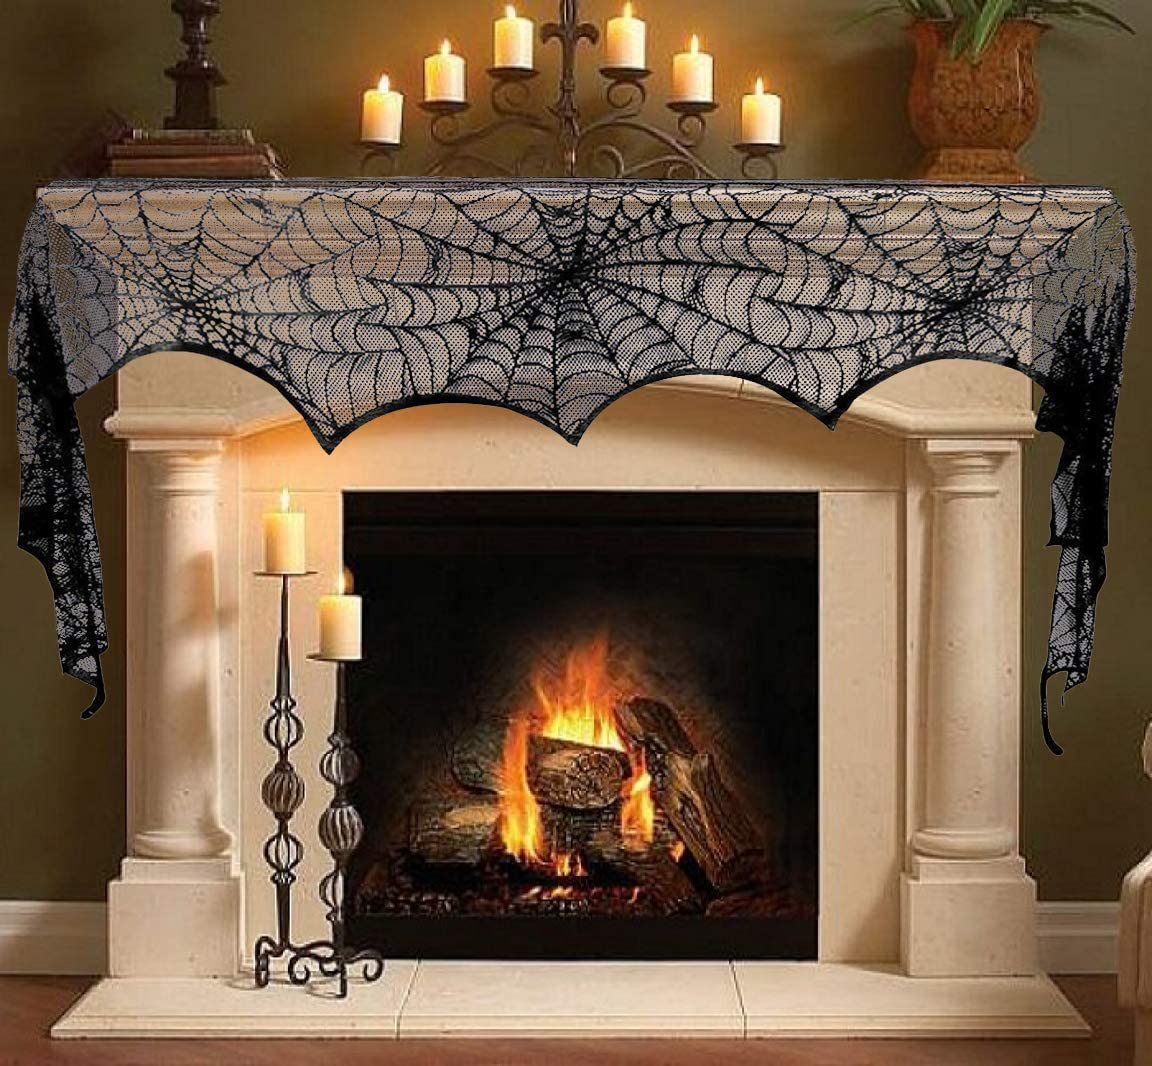 T-Antrix Halloween Decoration Black Lace Spiderweb Fireplace Mantle Scarf Cobweb Cover Festive Party Supplies (18 x 96 inch)